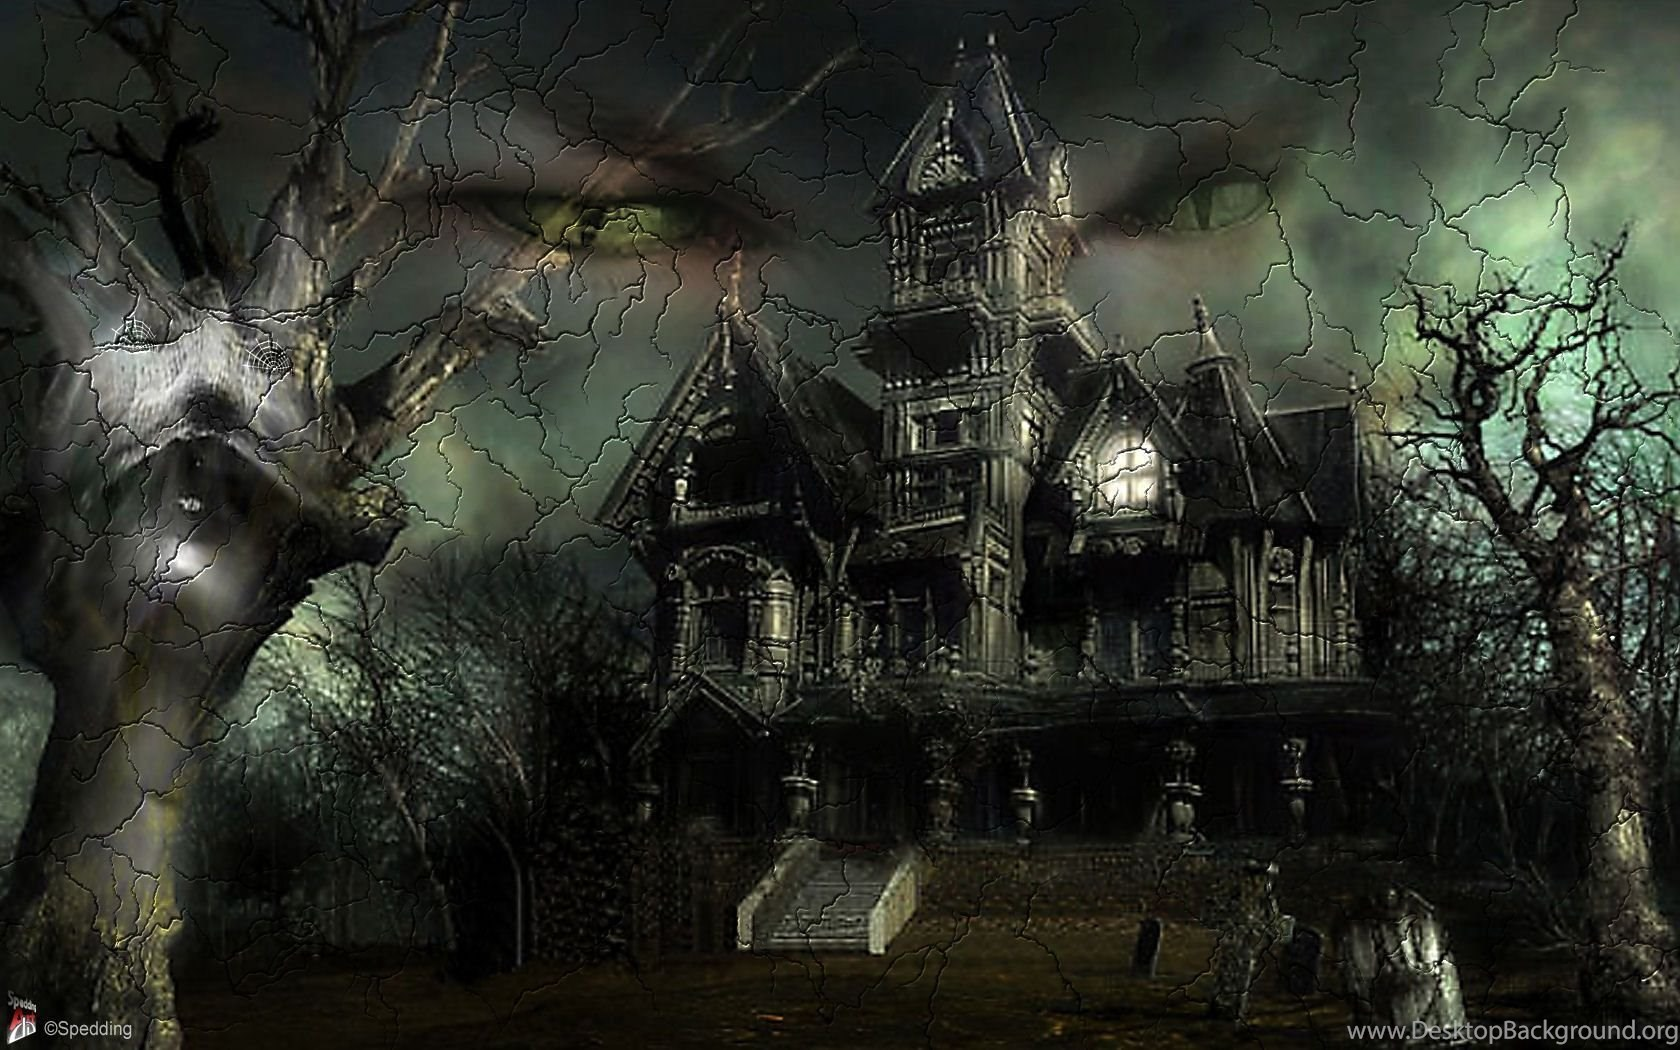 hd halloween wallpapers wallpapers hd wide desktop background